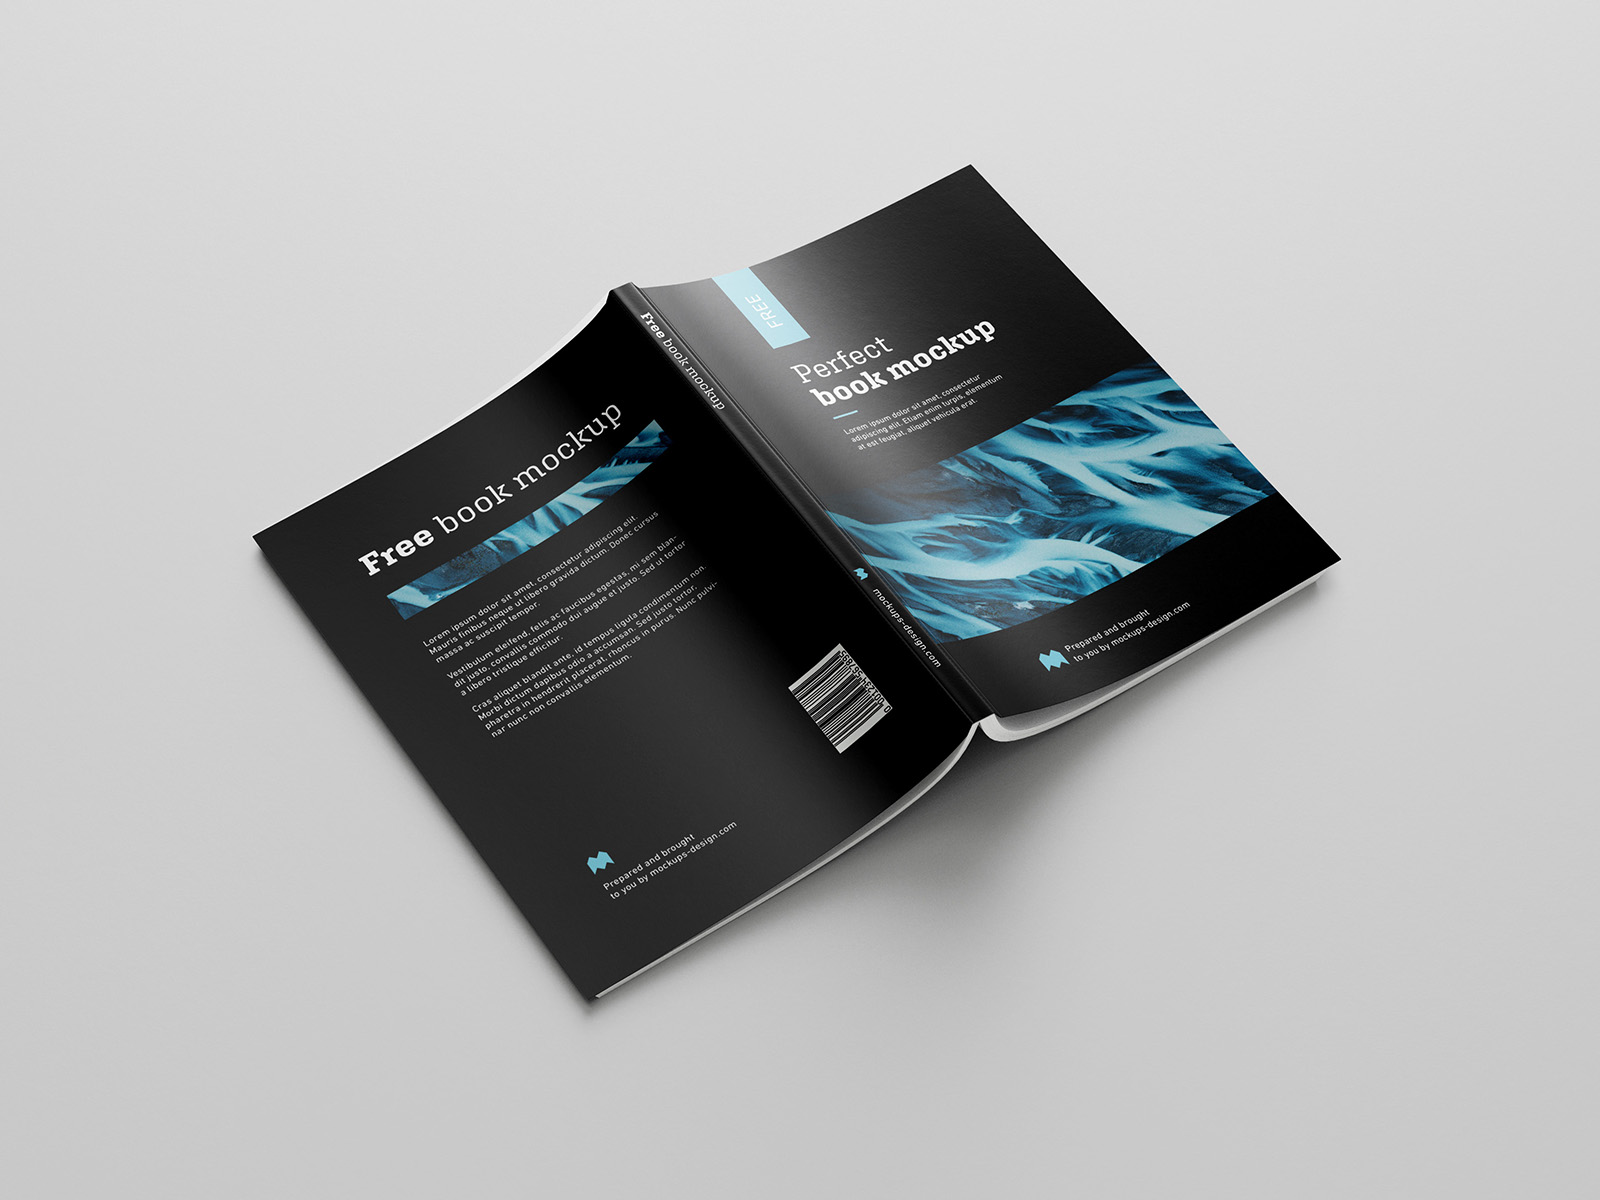 Find & download free graphic resources for book mockup. Free Softcover Book Mockup Set Free Mockup